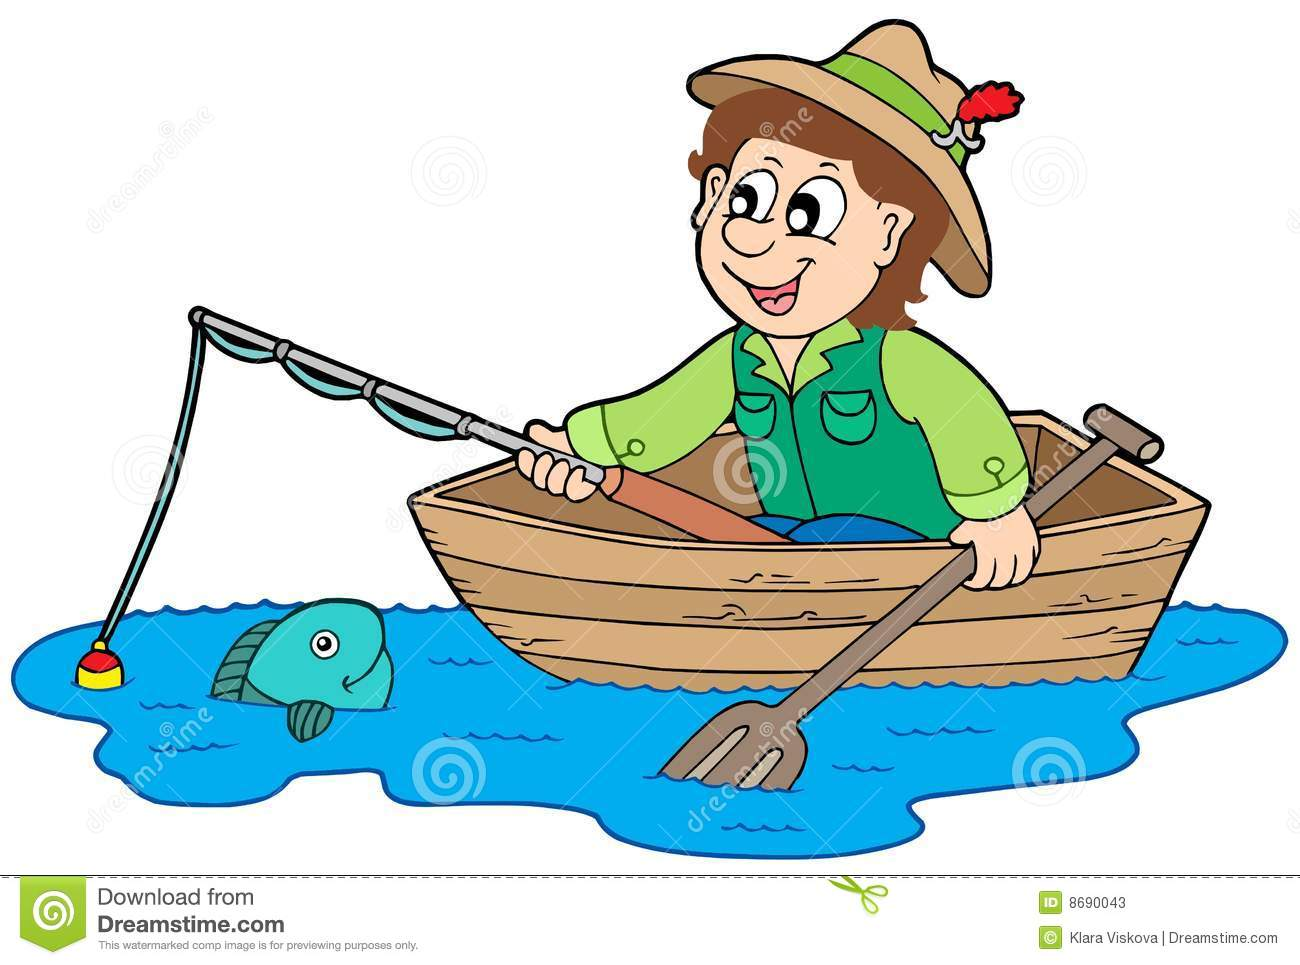 Fisherman clipart 6 » Clipart Station.